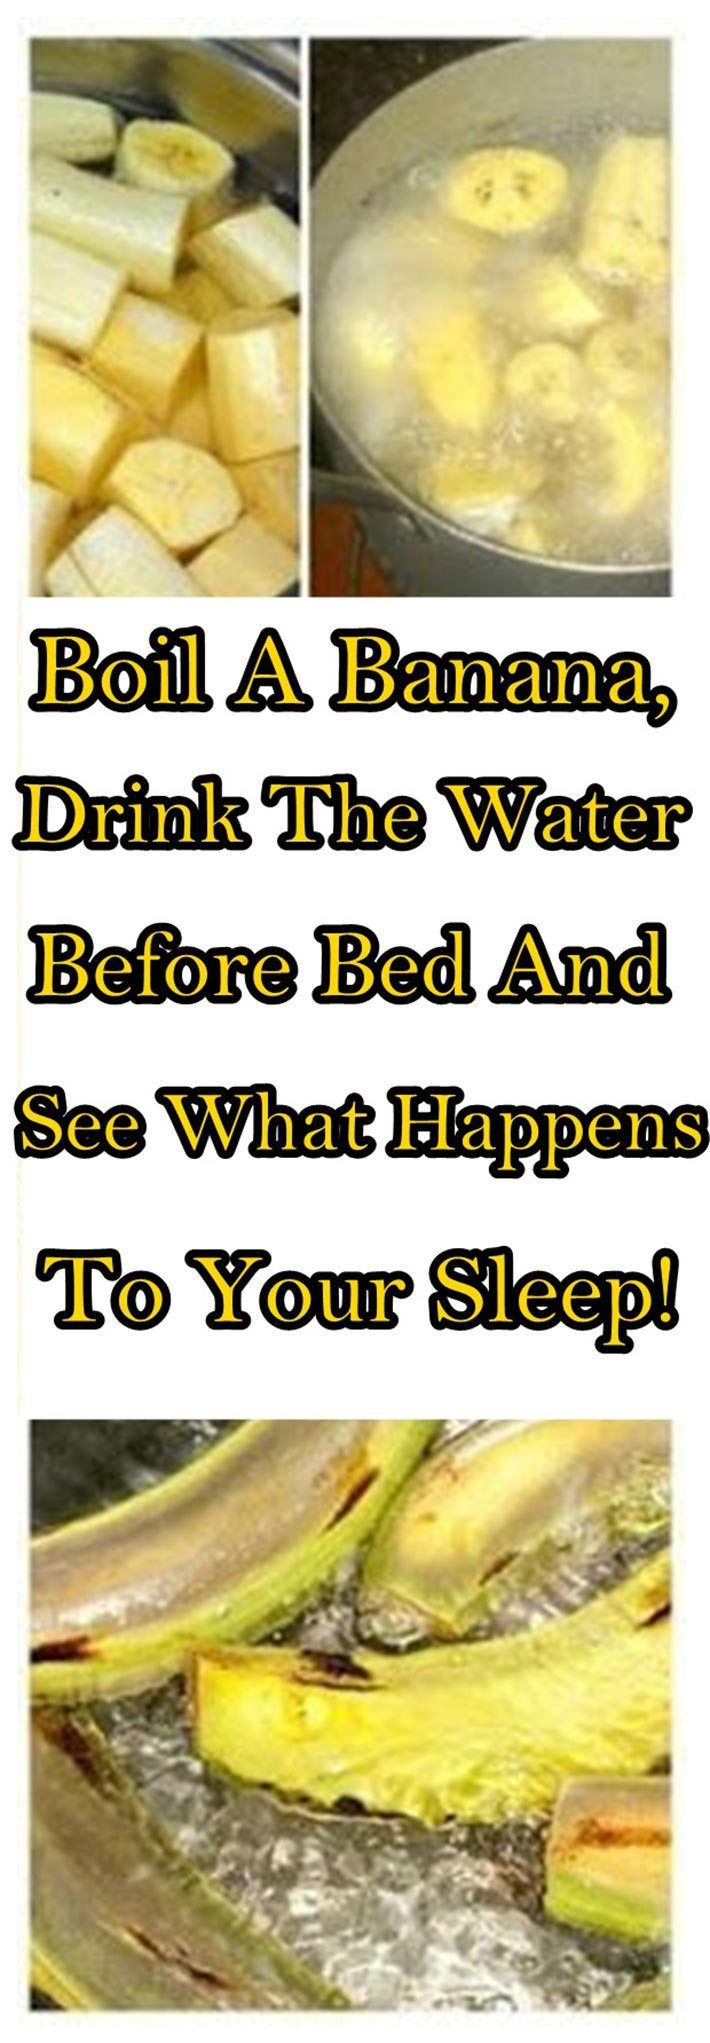 Boil A Banana, DrinkThe Water Before Bed And See What